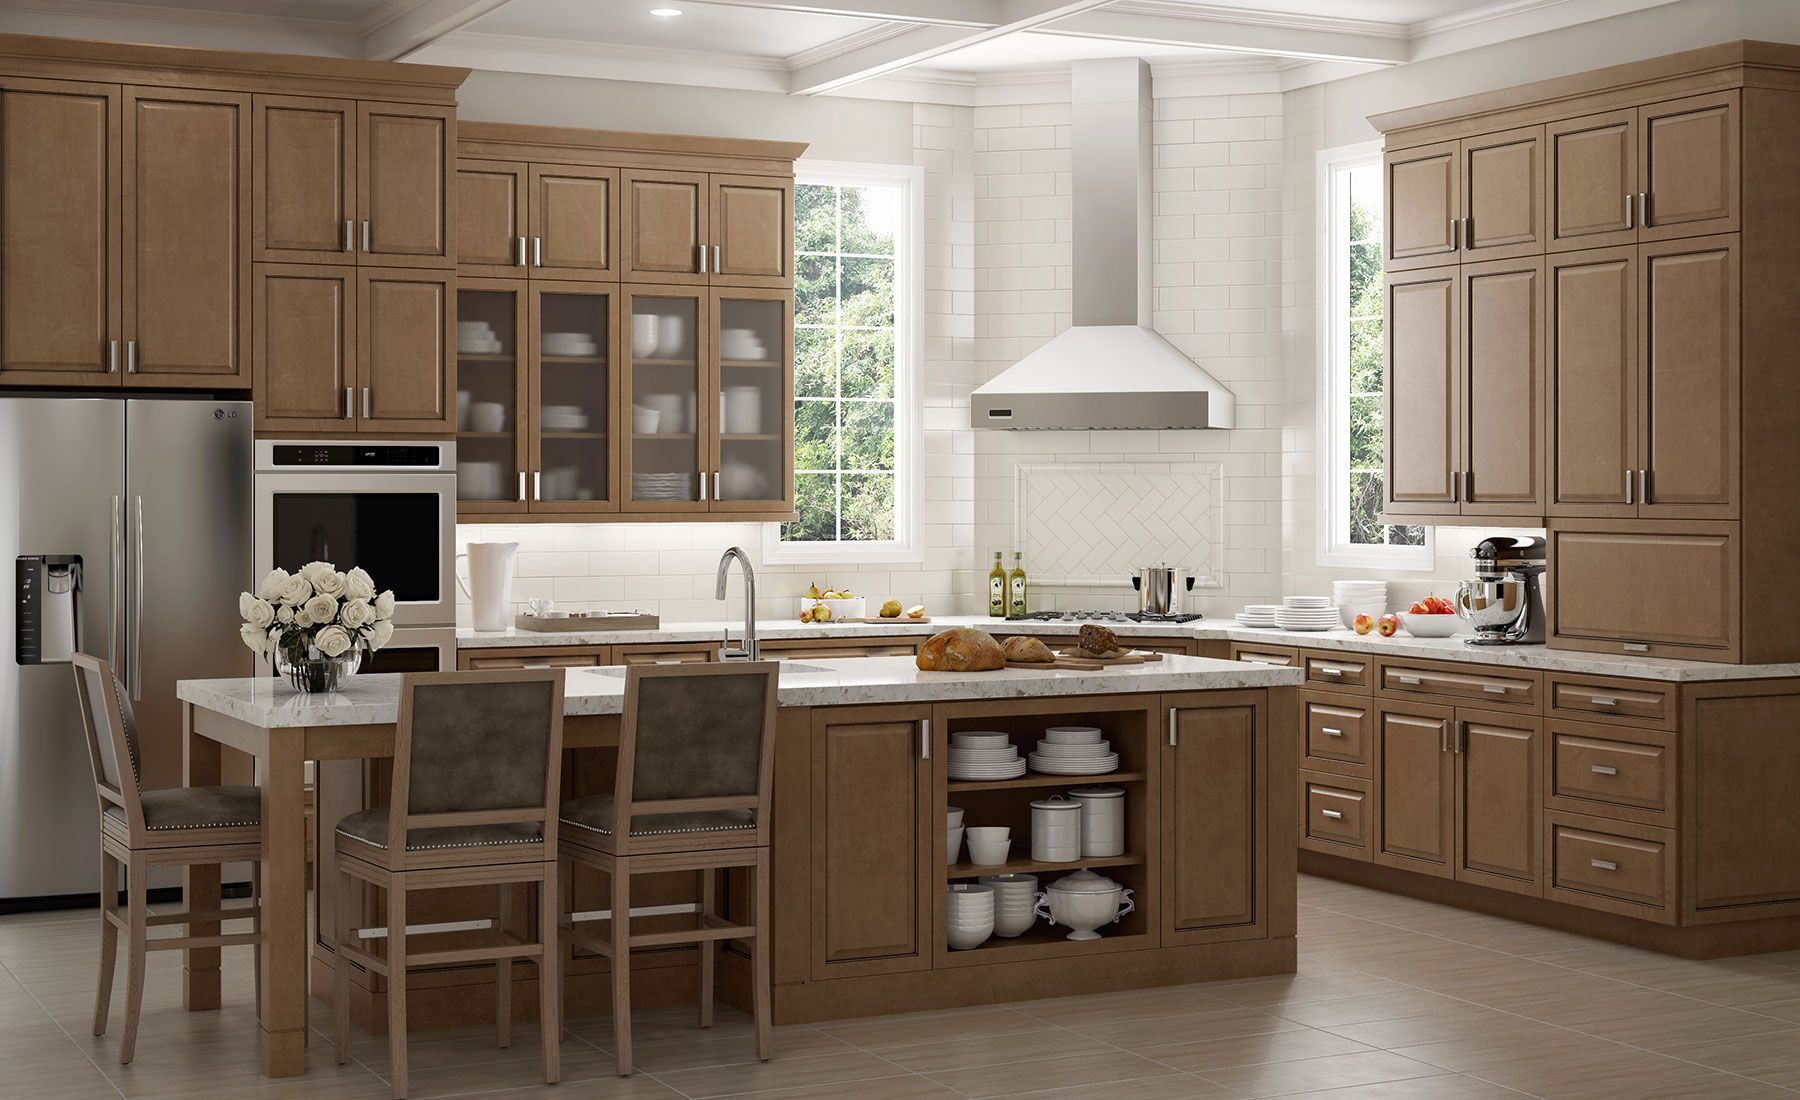 American Woodmark Pcs Professional Cabinet Solutions Designer Kitchen Cabinetry